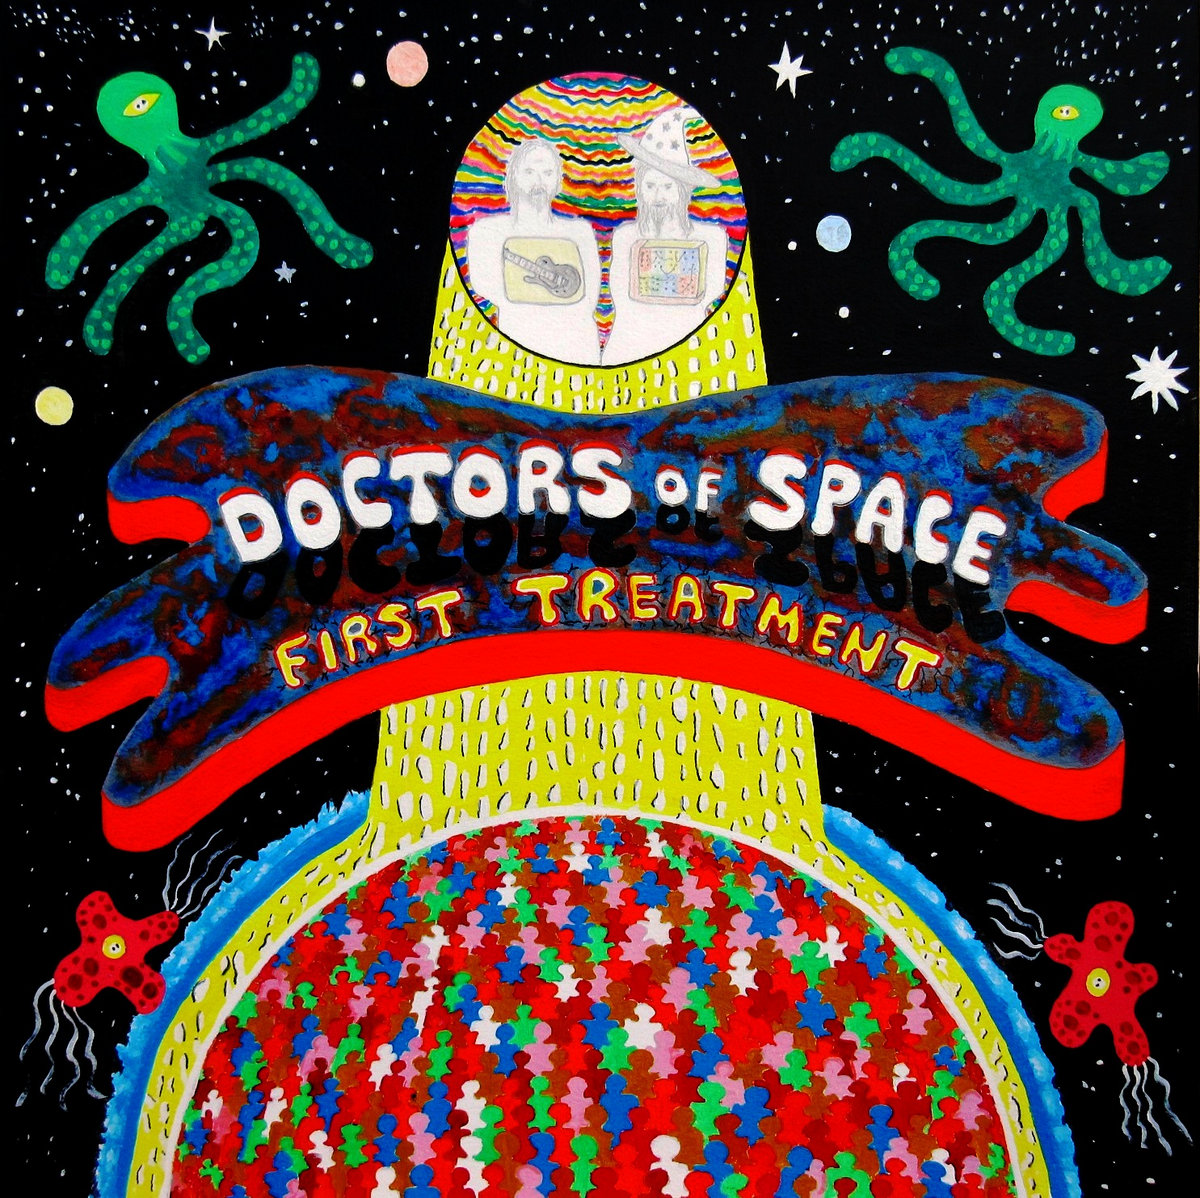 doctors of space first treatment